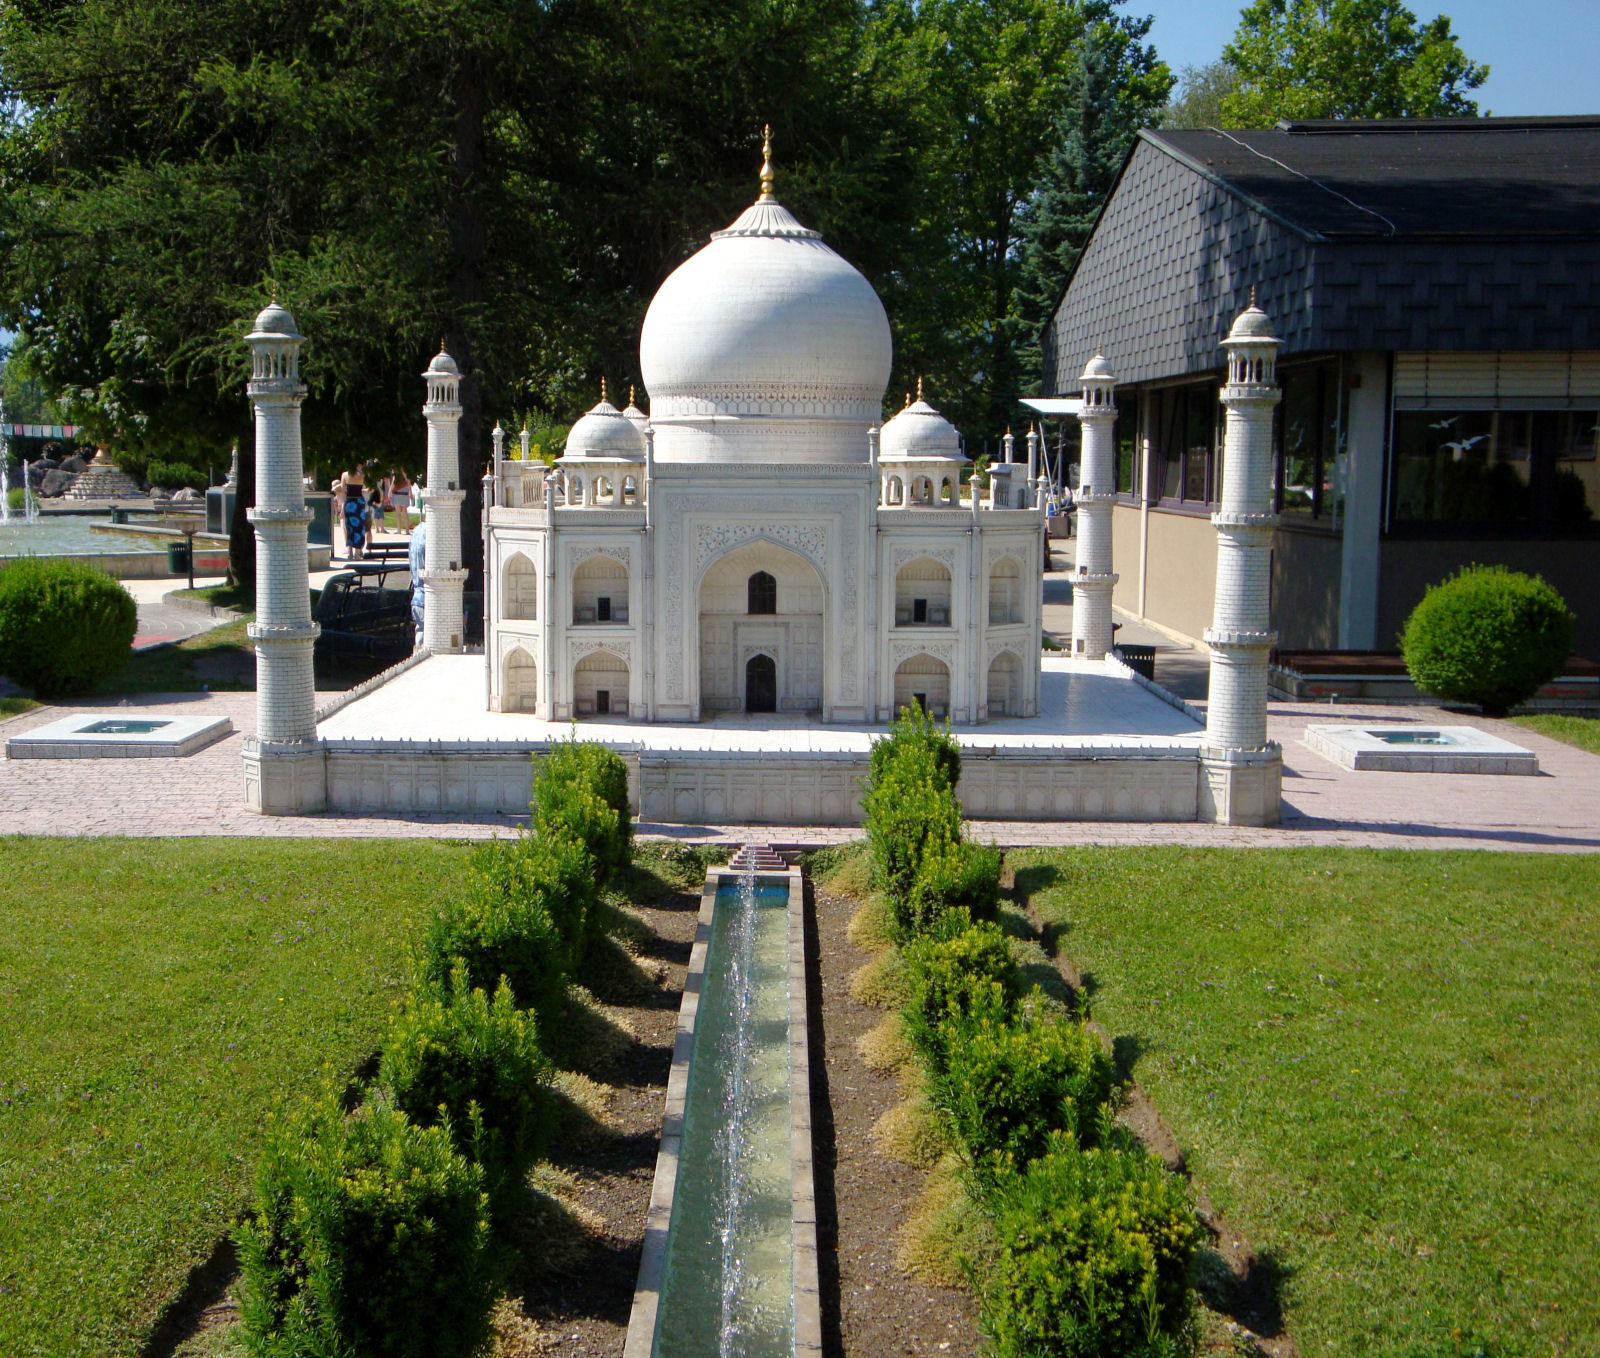 Model of the India's Taj Mahal Mausoleum at Minimundus, Klagenfurt, Austria